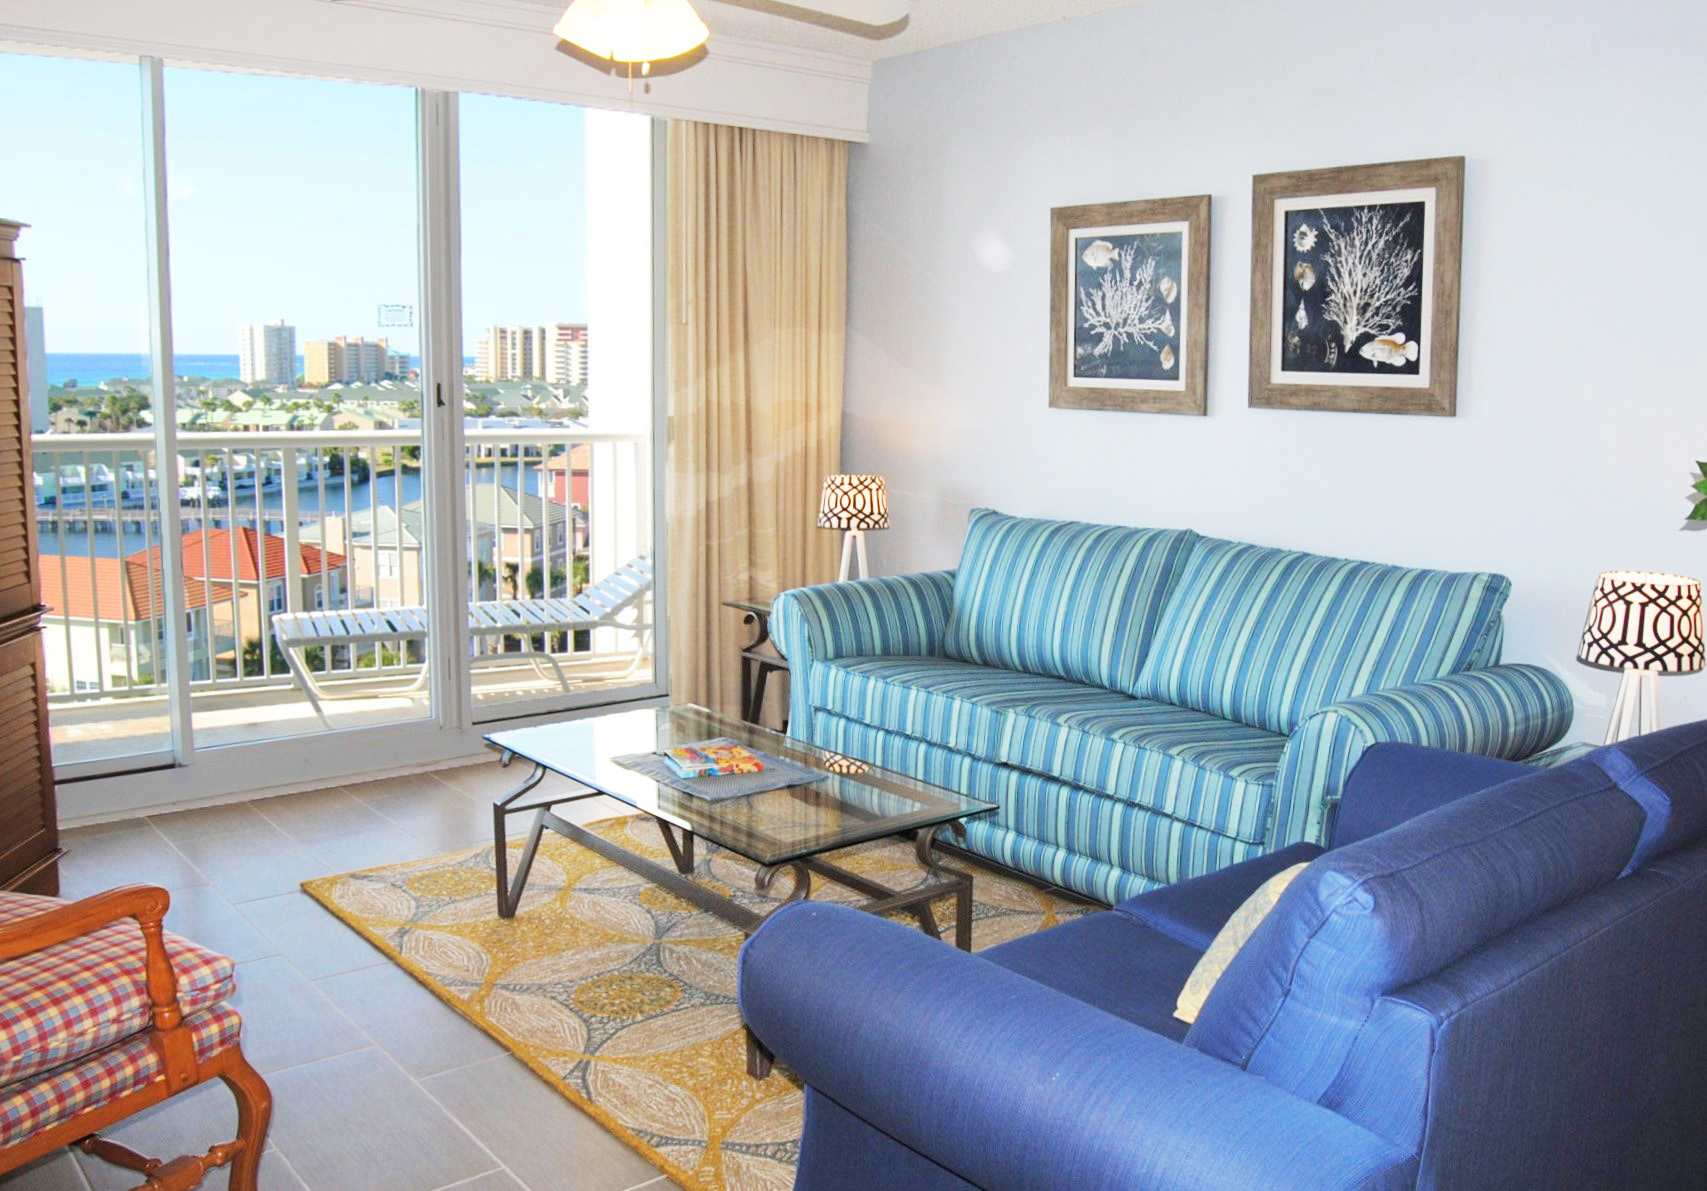 Living Room with Private Balcony - The Terrace at Pelican Beach Resort Destin Florida Vacation Rentals